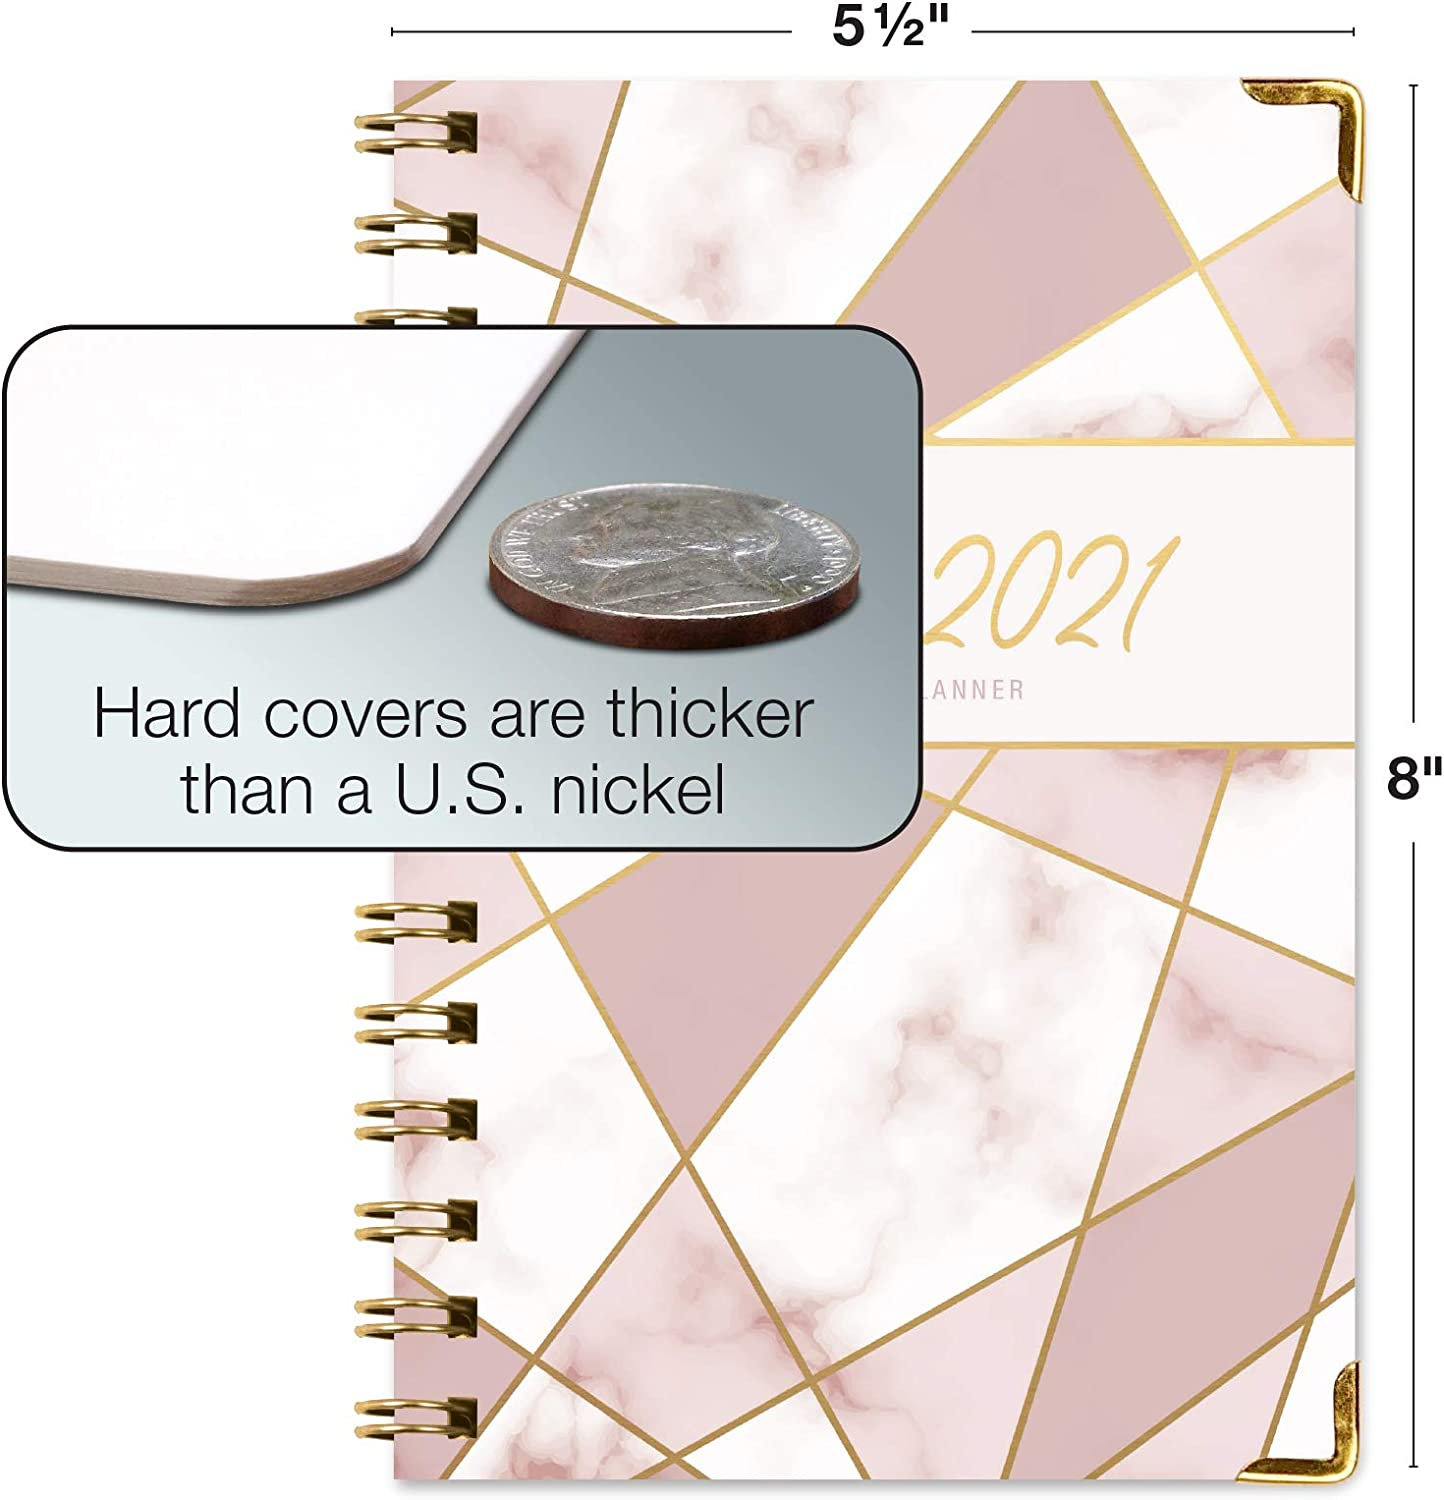 """HARDCOVER Academic Year 2020-2021 Planner: (June 2020 Through July 2021) 5.5""""x8"""" Daily Weekly Monthly Planner Yearly Agenda. Bonus Bookmark, Pocket Folder and Sticky Note Set (New Pink Triangles) : Office Products"""